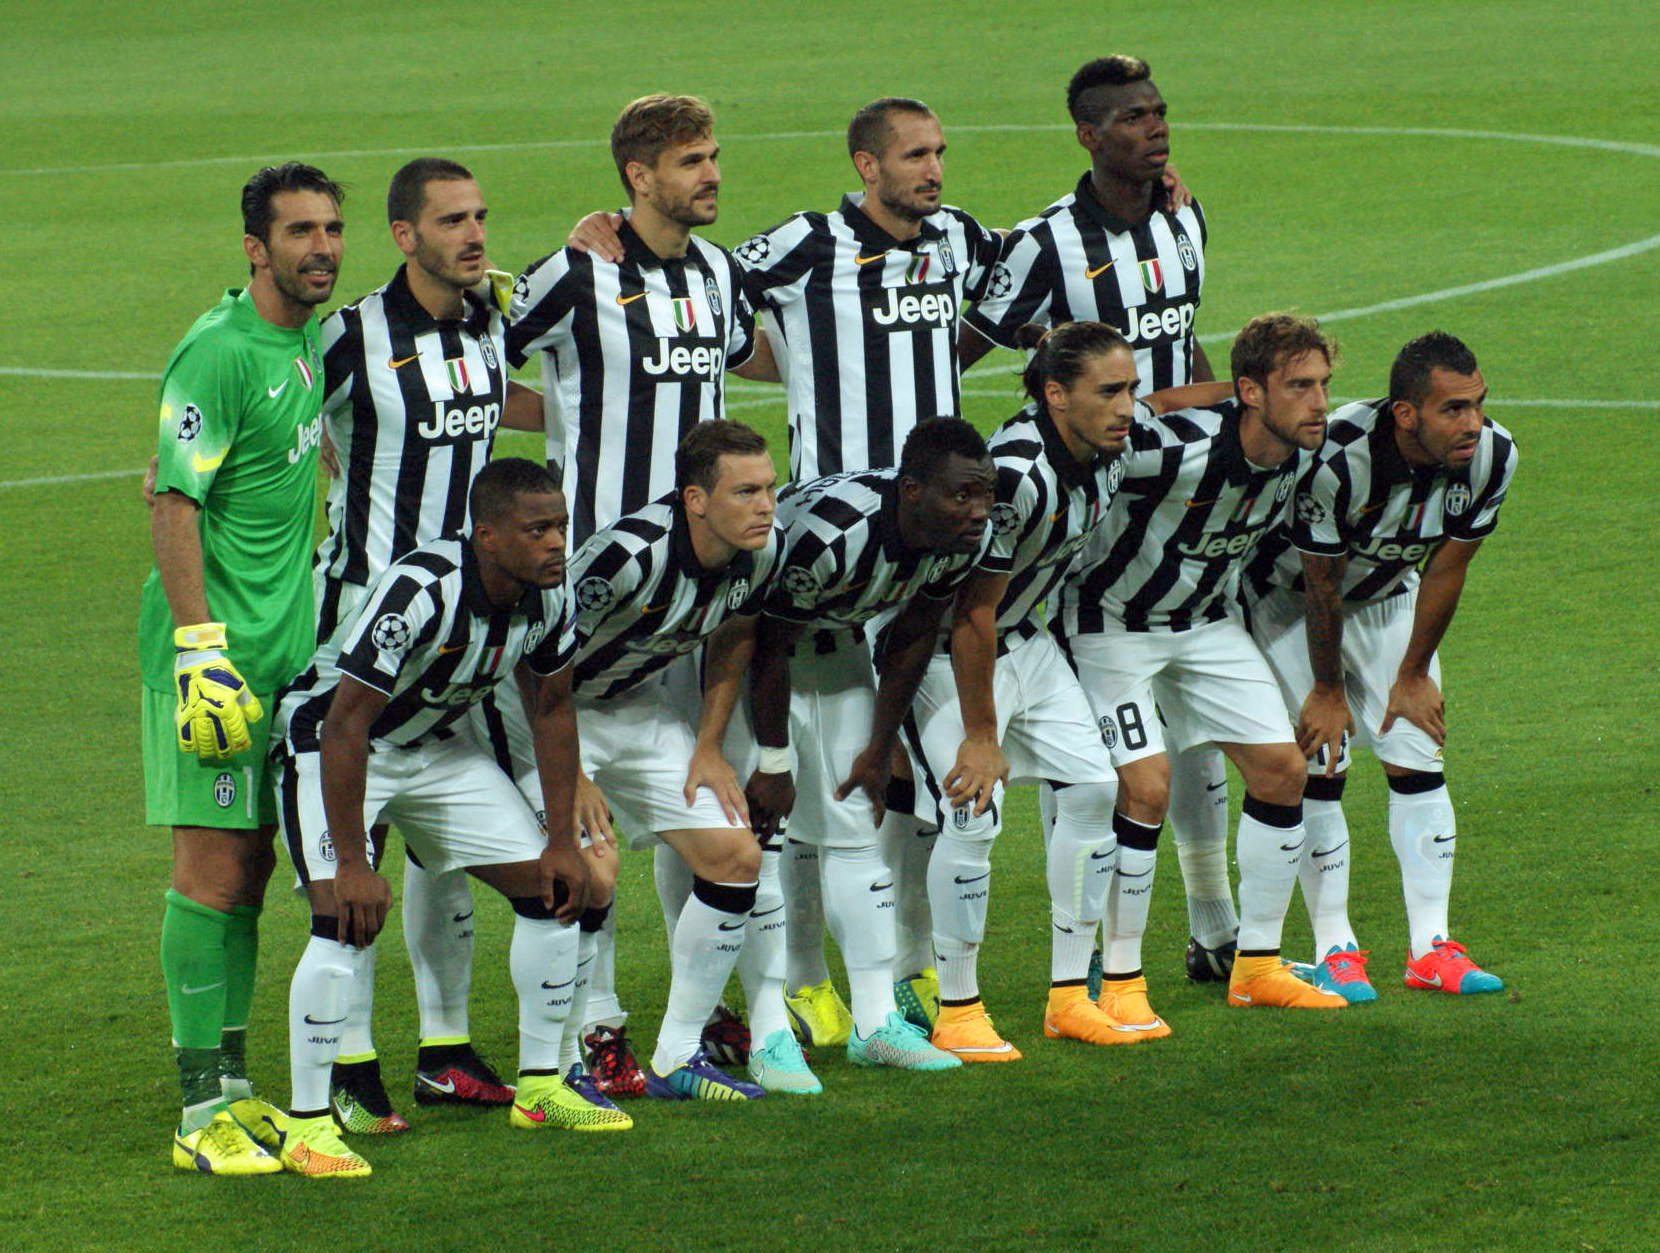 Juventus Football Club: Juventus Football Club 2014-2015